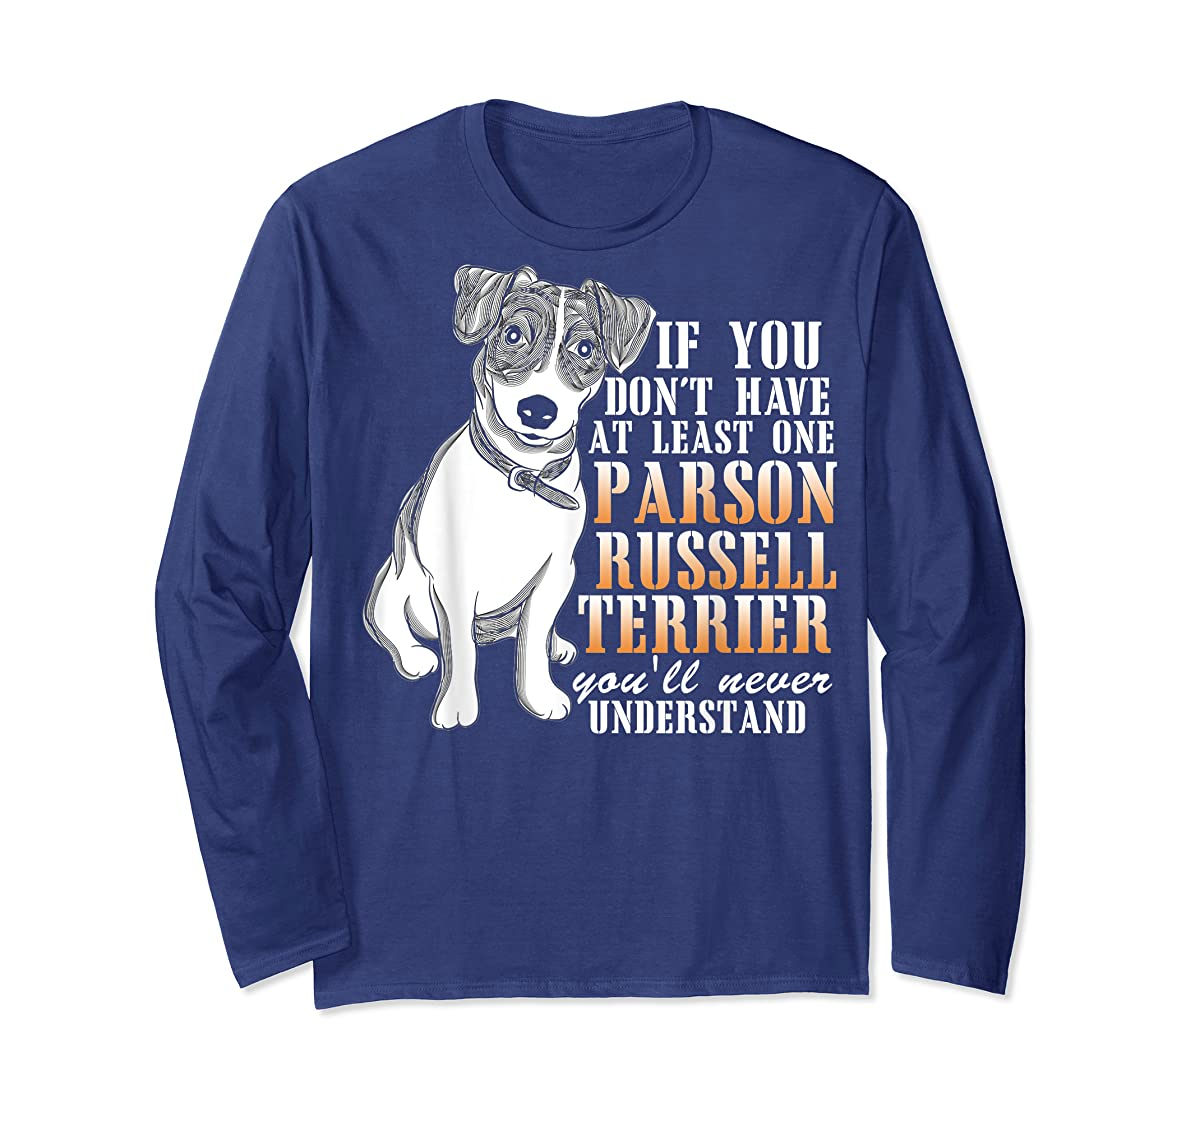 Parson Russell Terrier T Shirt, I Love My Dog T Shirt-Long Sleeve-Navy